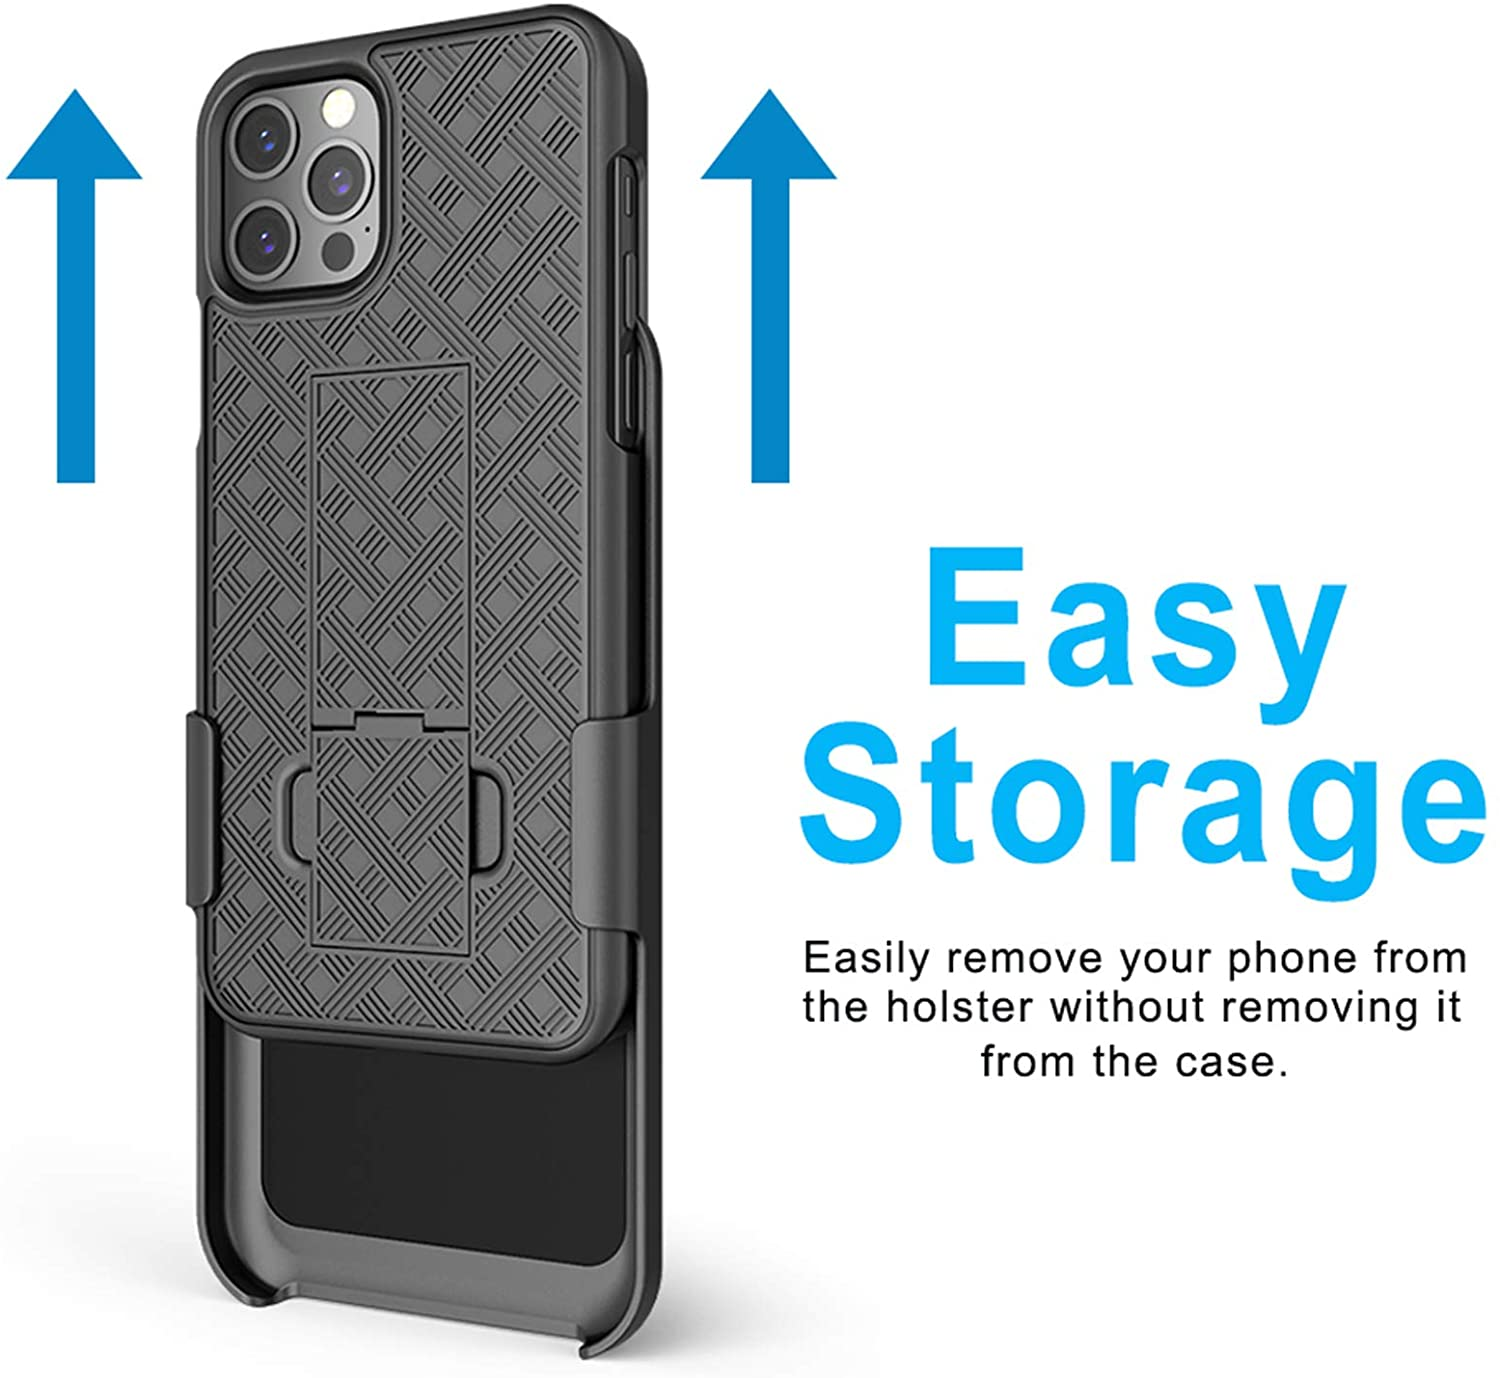 Slim Shell /& Swivel Belt Clip Holster with Built-in Kickstand for Apple iPhone Aduro Combo Case /& Holster for iPhone 12 Mini